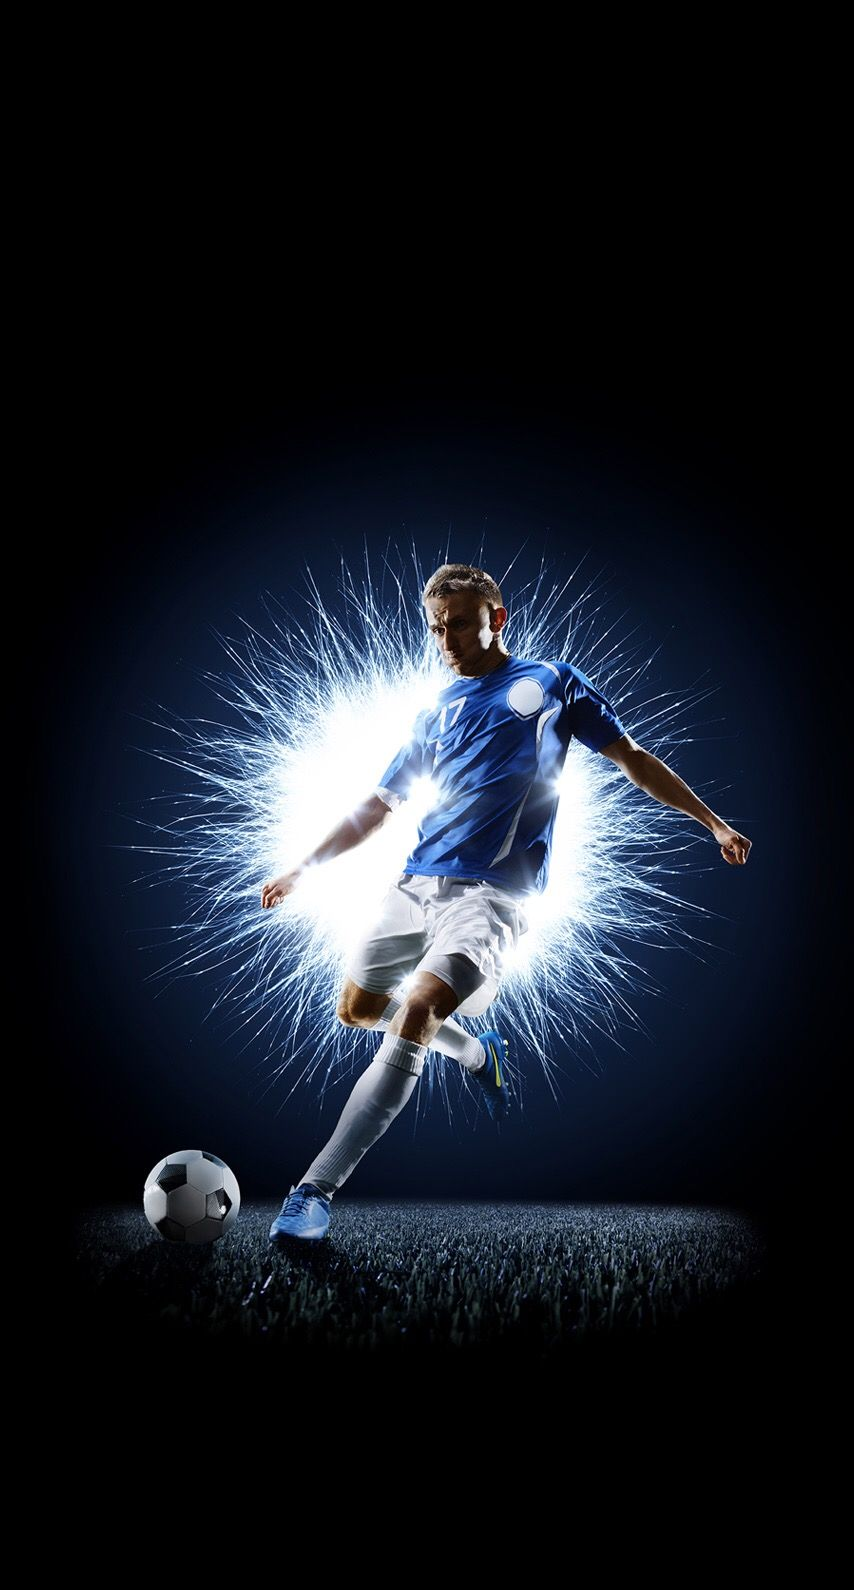 Hd Football Wallpapers For Iphone Android Free Football Background Football Wallpaper Soccer Drawing